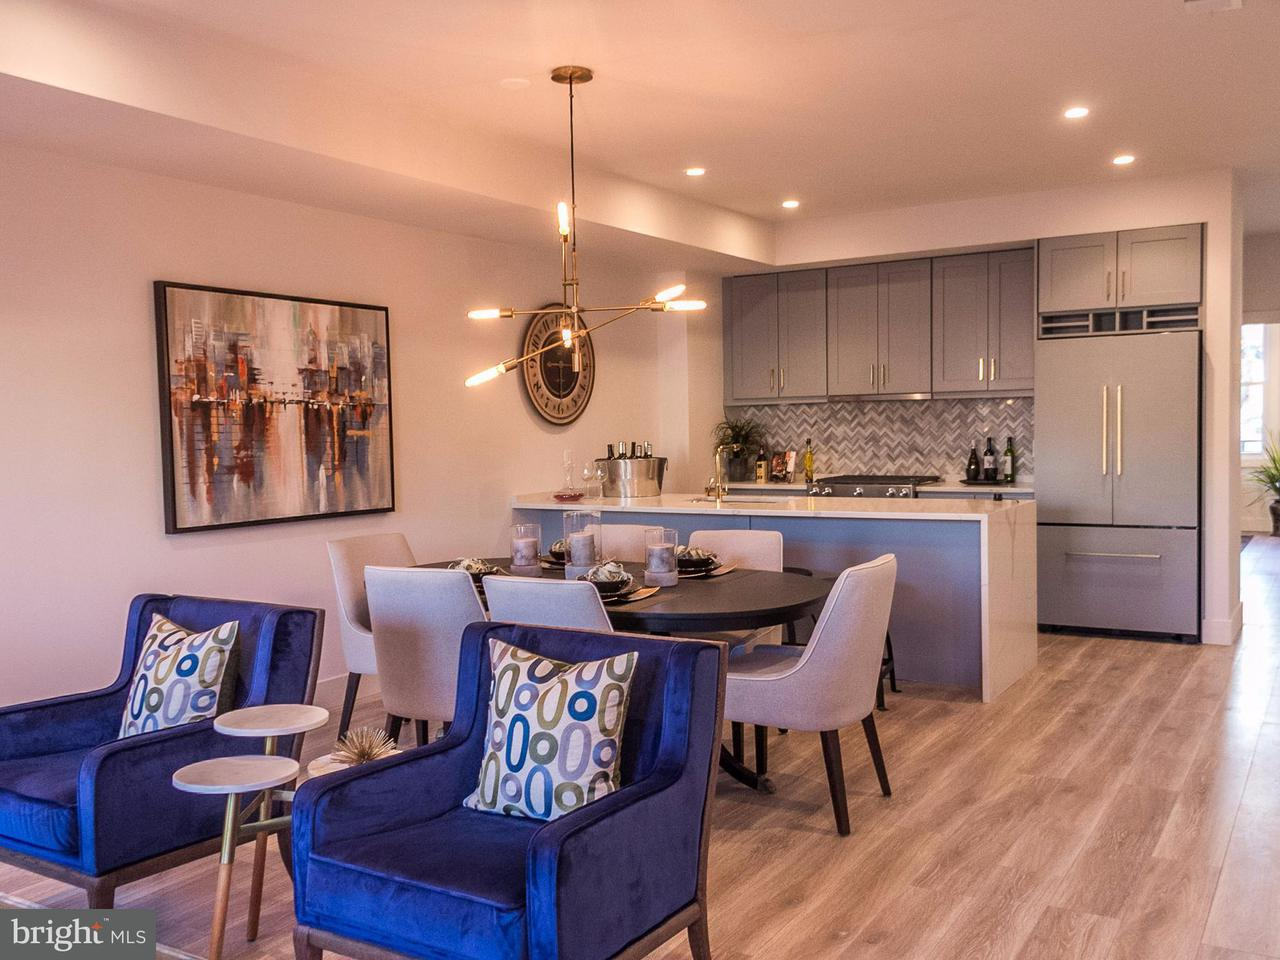 Duplex for Sale at 3014 Sherman Ave Nw #2 3014 Sherman Ave Nw #2 Washington, District Of Columbia 20001 United States